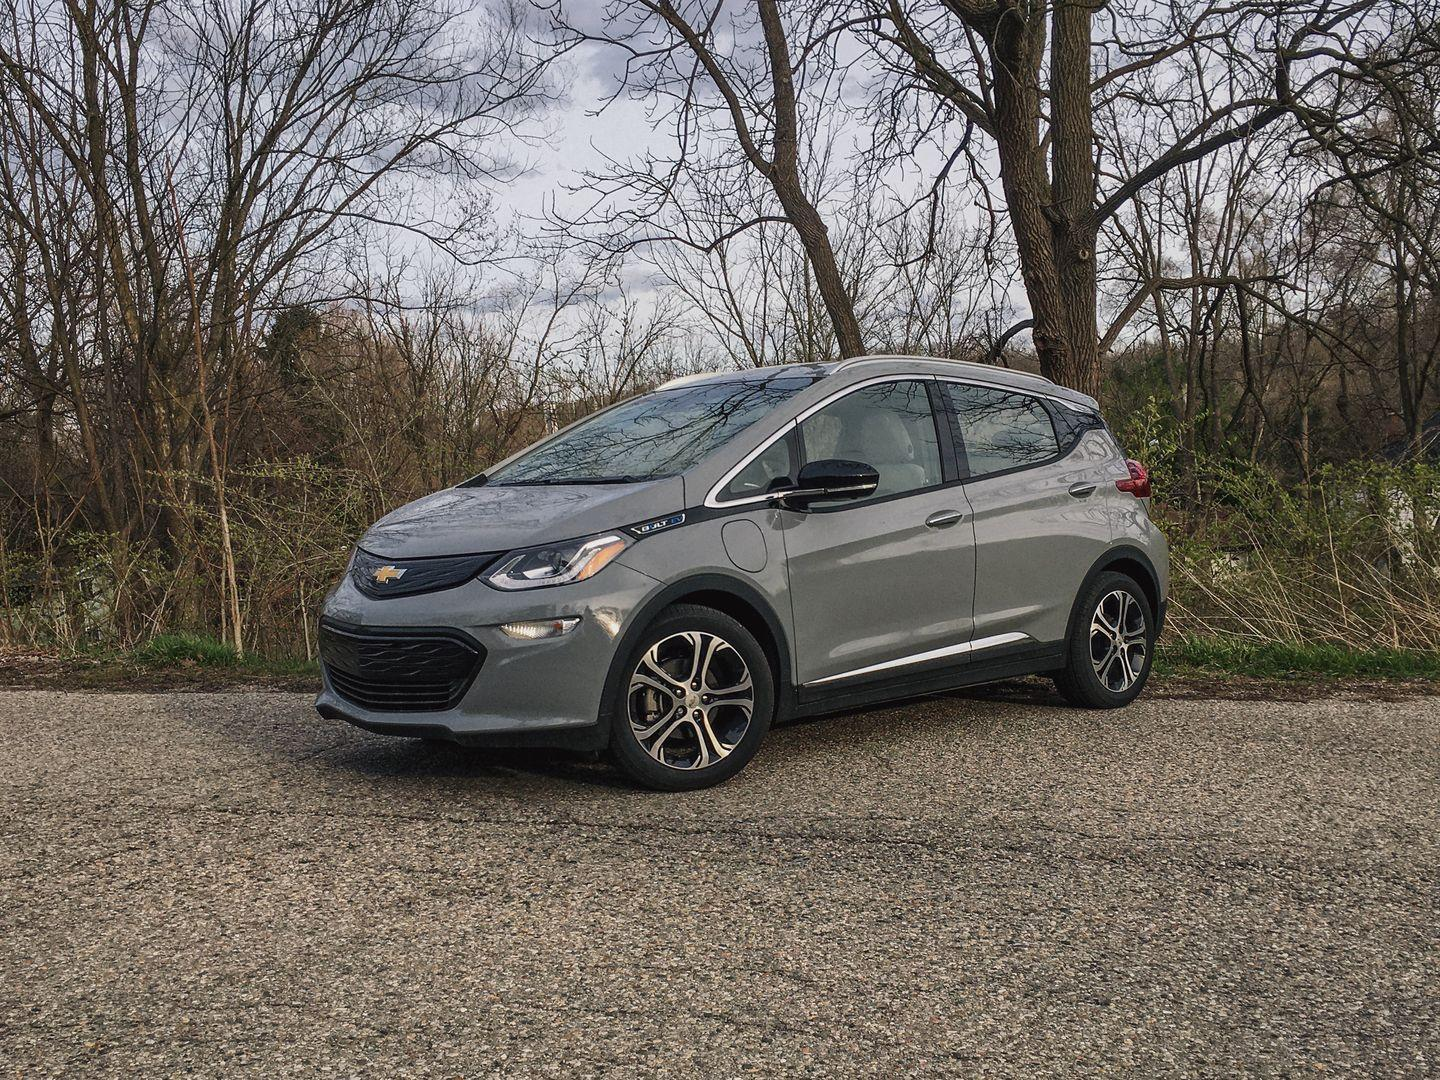 "<p>The <a href=""https://www.caranddriver.com/chevrolet/bolt-ev"" rel=""nofollow noopener"" target=""_blank"" data-ylk=""slk:2020 Bolt EV"" class=""link rapid-noclick-resp"">2020 Bolt EV</a> is an all-electric hatchback with a long driving range, spacious cabin, and affordable price tag. Capable of traveling up to 259 miles on a single charge and starting at less than $40,000, the Bolt attempts to make EVs more accessible to everyone. Its electric motor provides almost-instant acceleration, and the <a href=""https://www.caranddriver.com/chevrolet"" rel=""nofollow noopener"" target=""_blank"" data-ylk=""slk:Chevy"" class=""link rapid-noclick-resp"">Chevy</a> hatchback is truly fun to drive. An affordable fast-charging option and an innovative <a href=""https://www.caranddriver.com/features/a23477930/electric-car-one-pedal-driving/"" rel=""nofollow noopener"" target=""_blank"" data-ylk=""slk:regenerative-braking"" class=""link rapid-noclick-resp"">regenerative-braking</a> paddle also enhance the user experience. Likewise, people will appreciate its roomy accommodations, available infotainment and driver-assistance technologies, and crossover-like cargo capacity. While everyone won't be enchanted by the 2020 Bolt's staid looks and cheap interior, they'll likely appreciate everything else it offers.</p><p><a class=""link rapid-noclick-resp"" href=""https://www.caranddriver.com/chevrolet/bolt-ev"" rel=""nofollow noopener"" target=""_blank"" data-ylk=""slk:Review, Pricing, and Specs"">Review, Pricing, and Specs</a></p>"